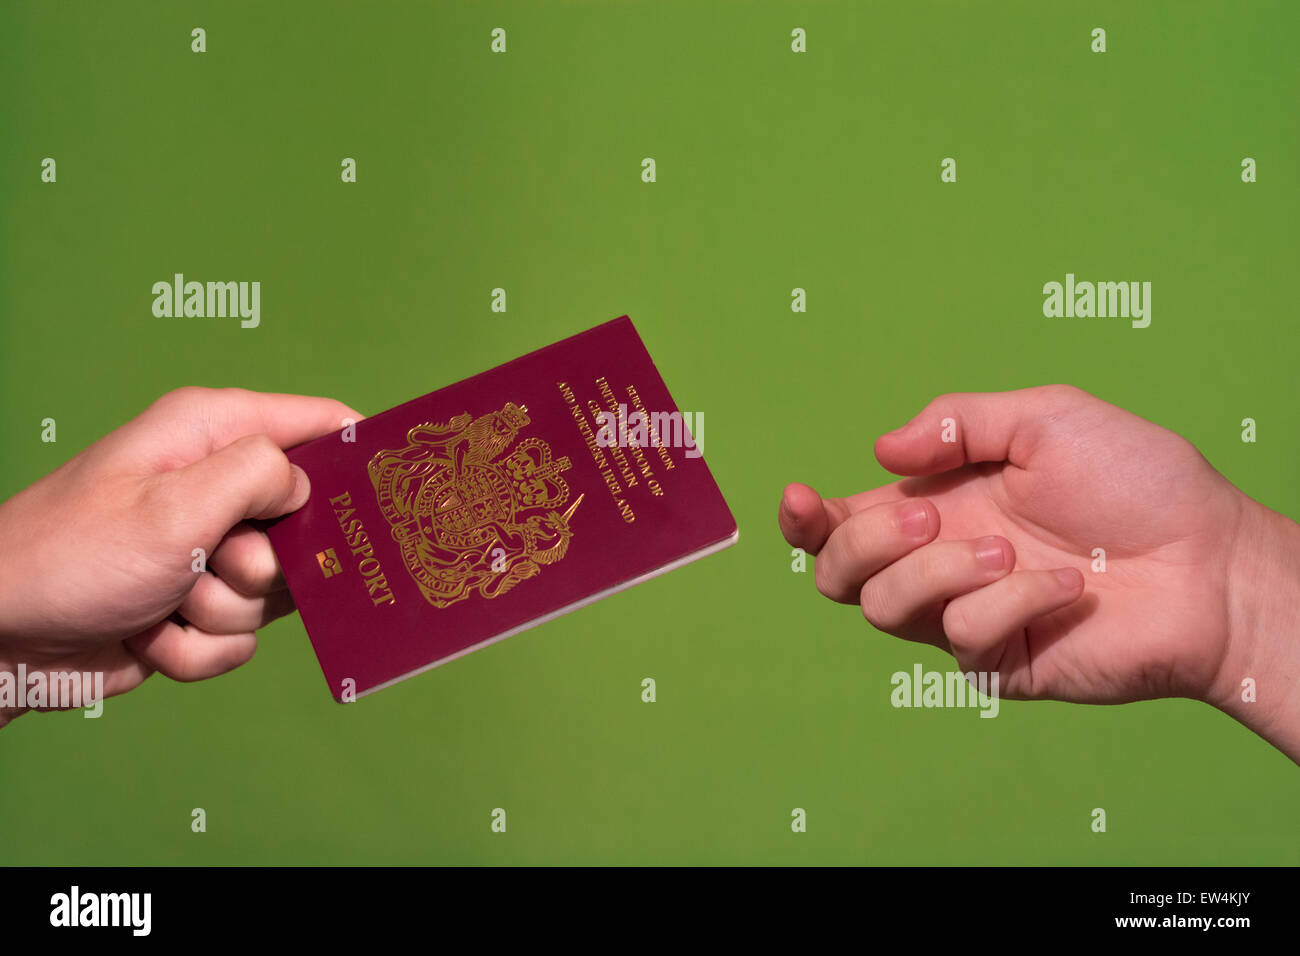 Hands exchanging a passport isolated on a green-screen background - Stock Image